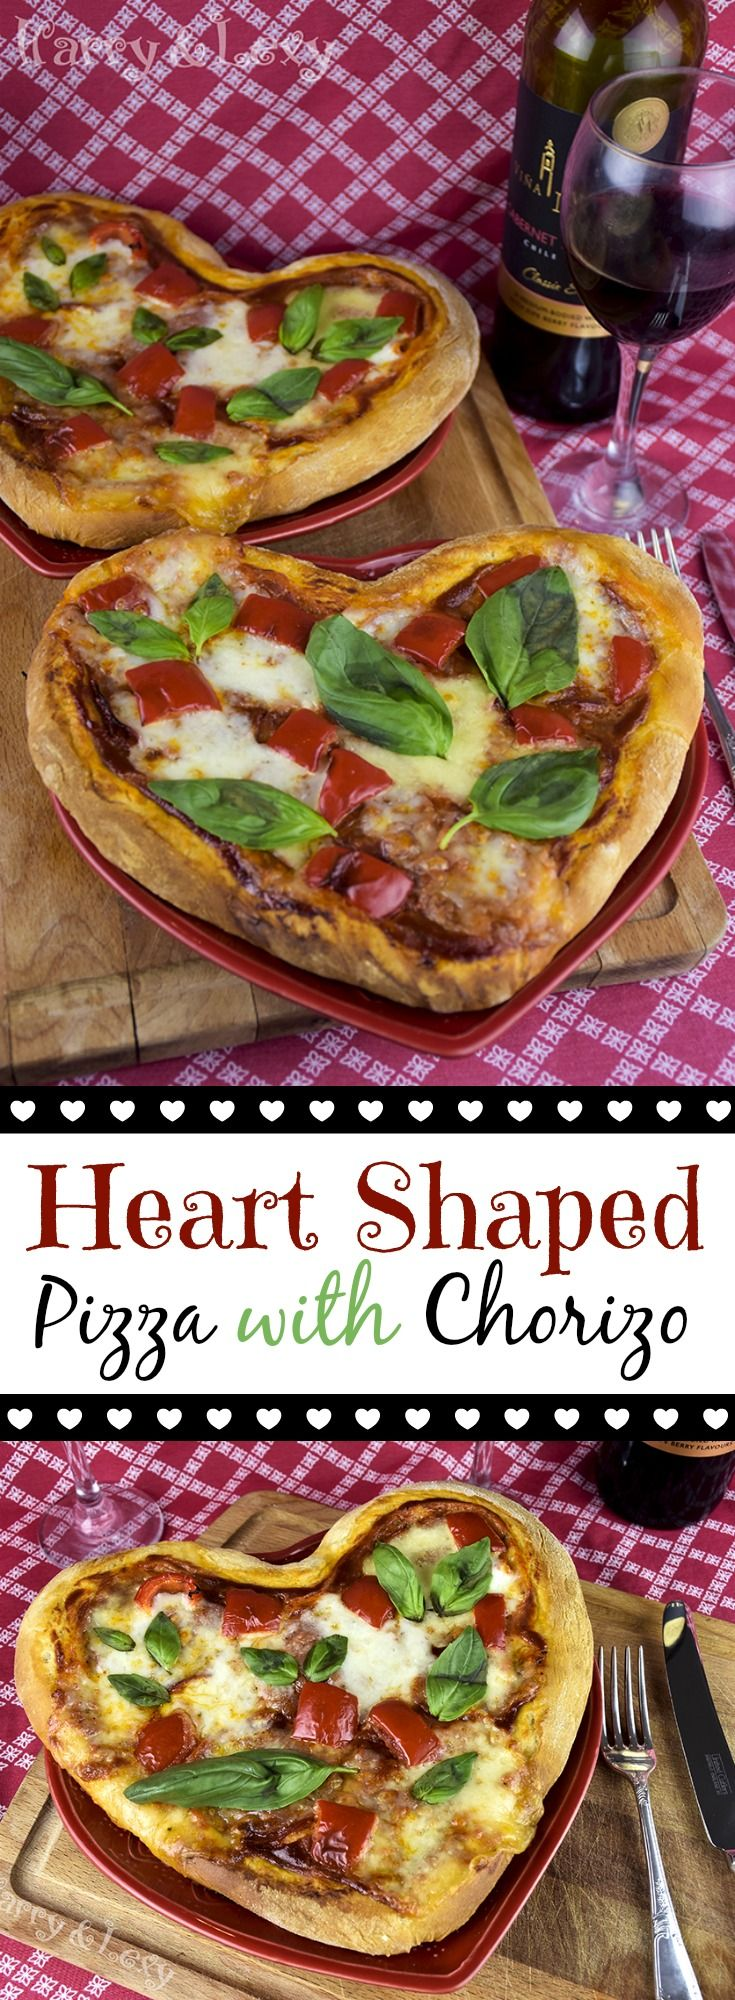 25 Best Ideas About Heart Shaped Pizza On Pinterest